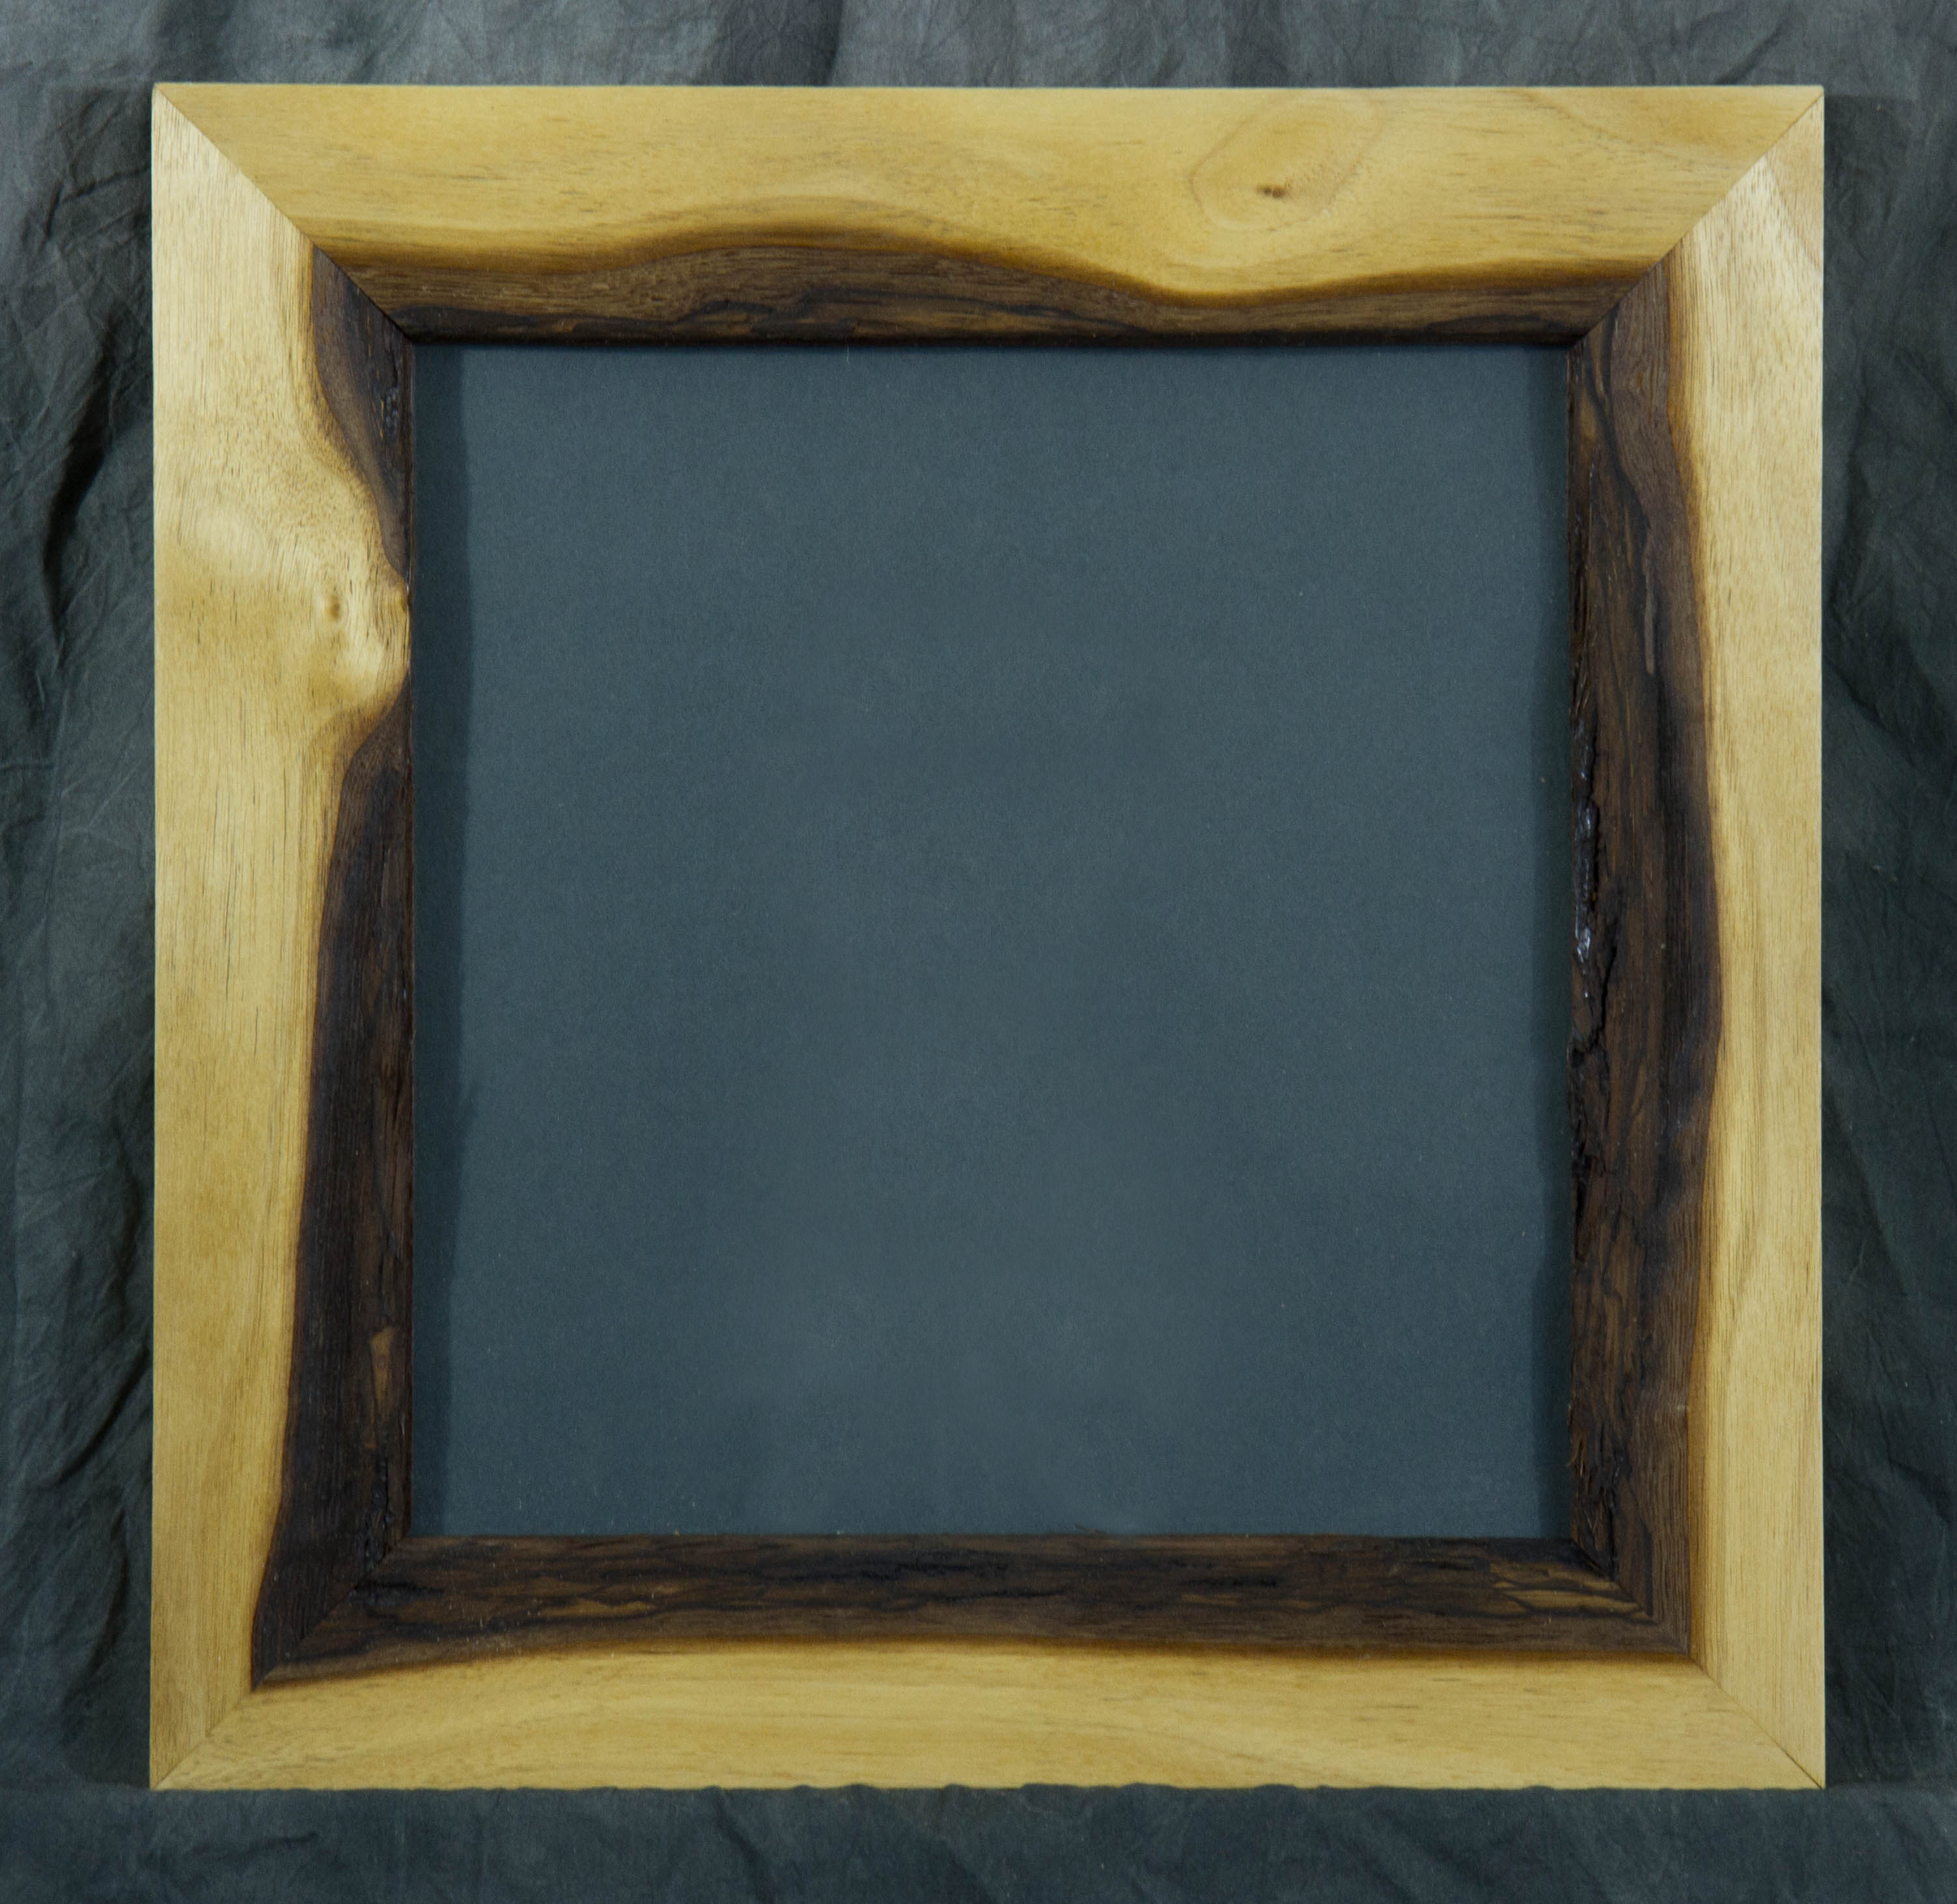 with rare exception the frames are only roughly sanded and may have a less smooth edge care should go into handling the frame the natural character of